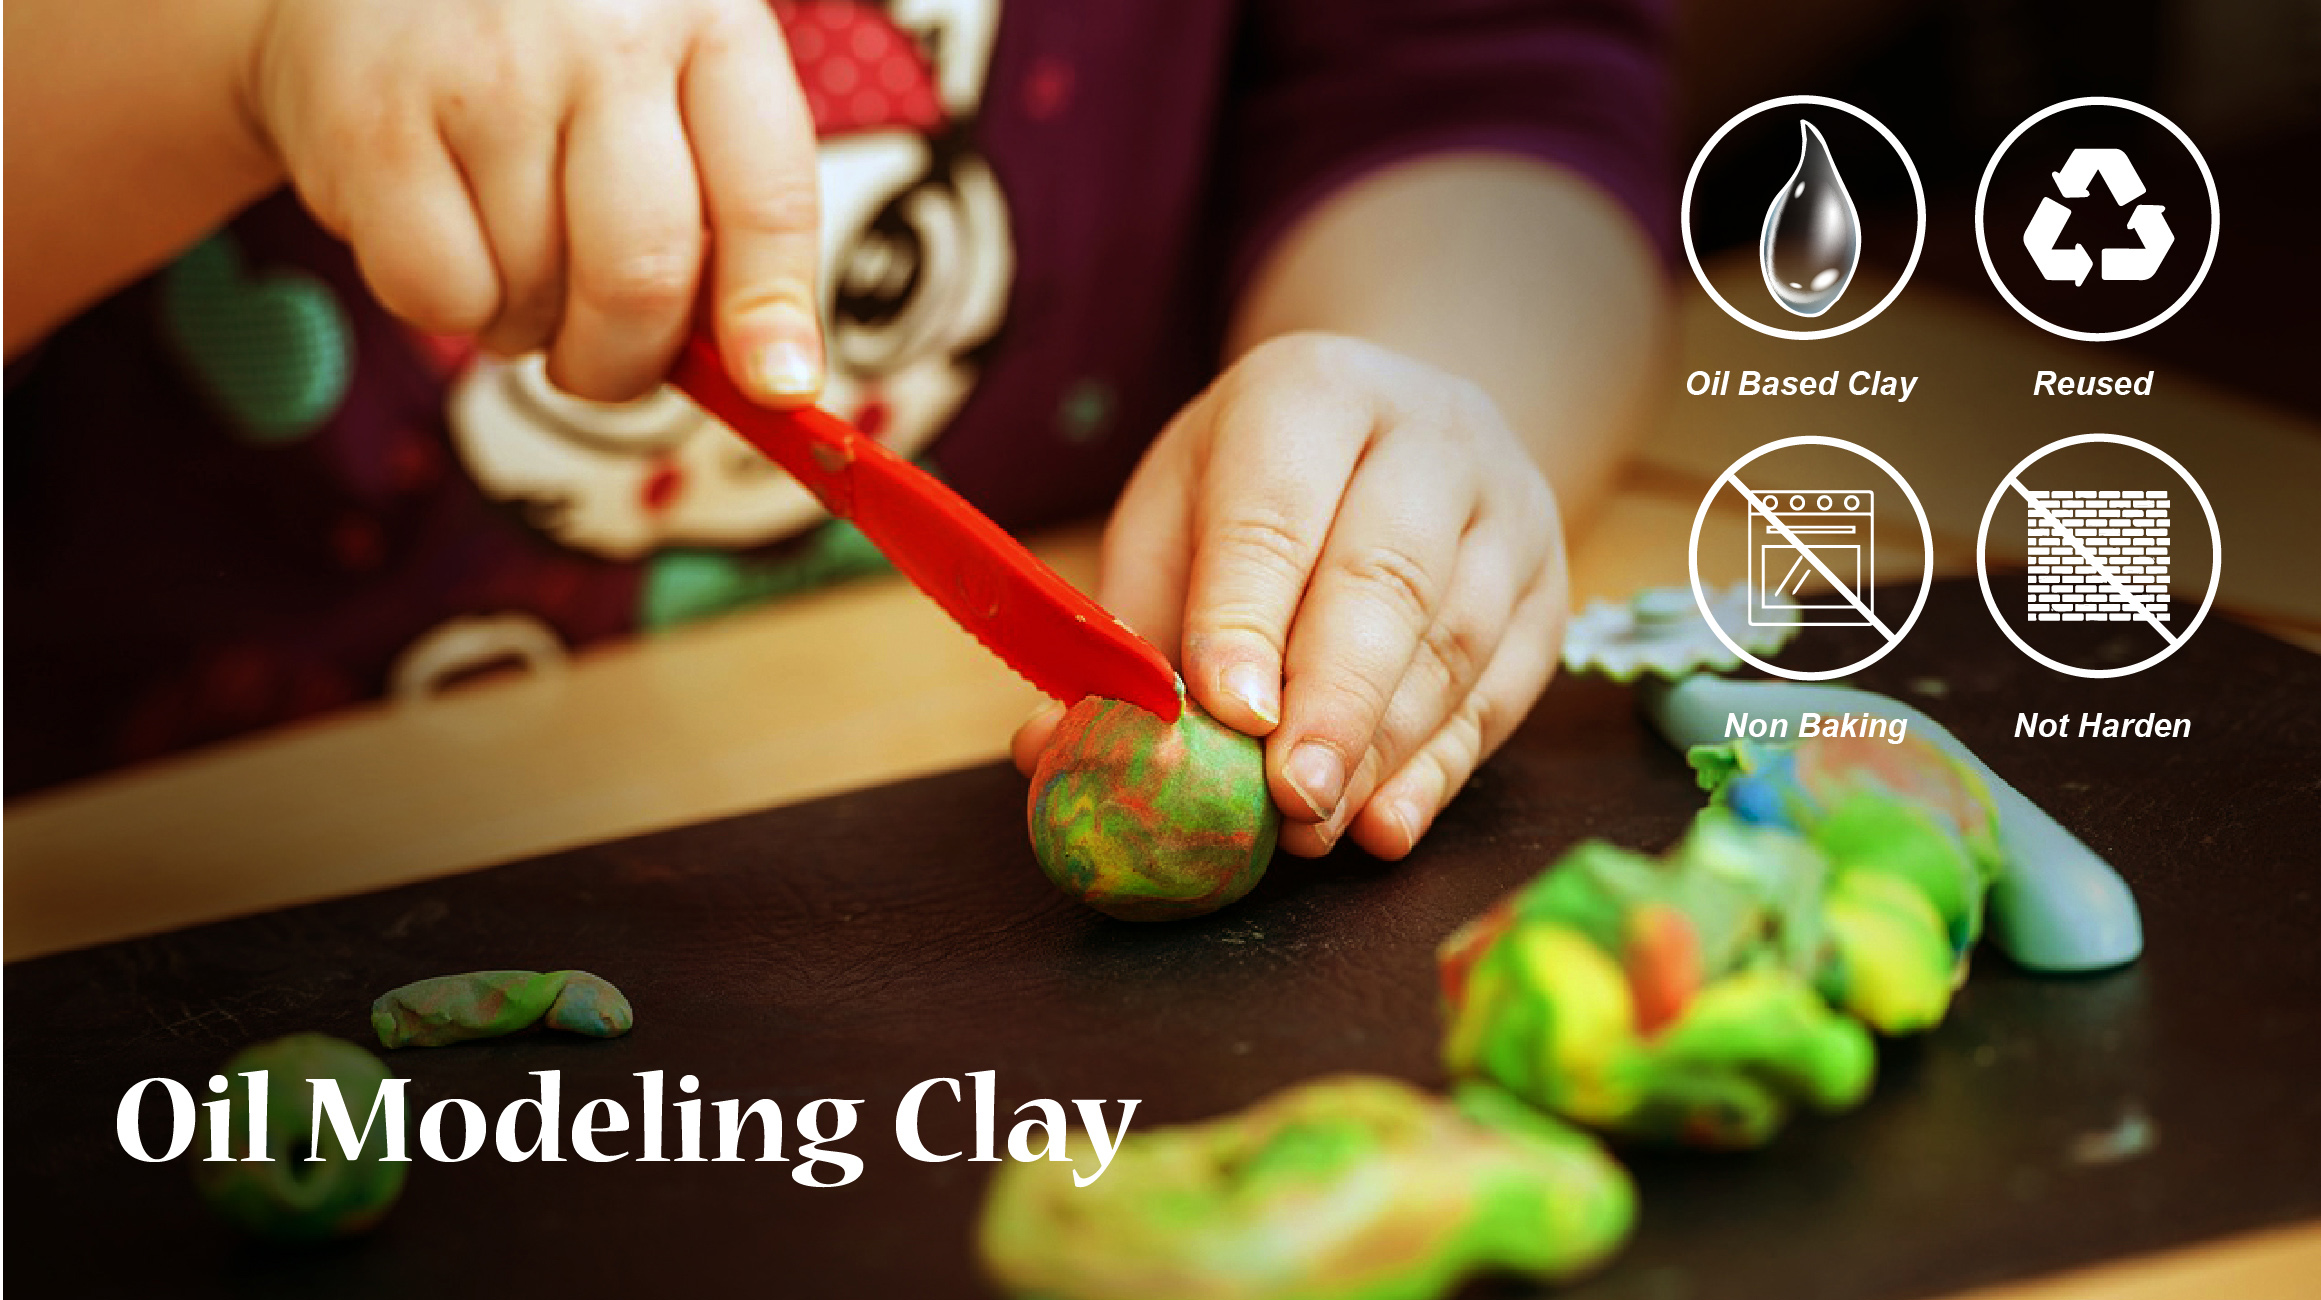 Oil Modeling clay